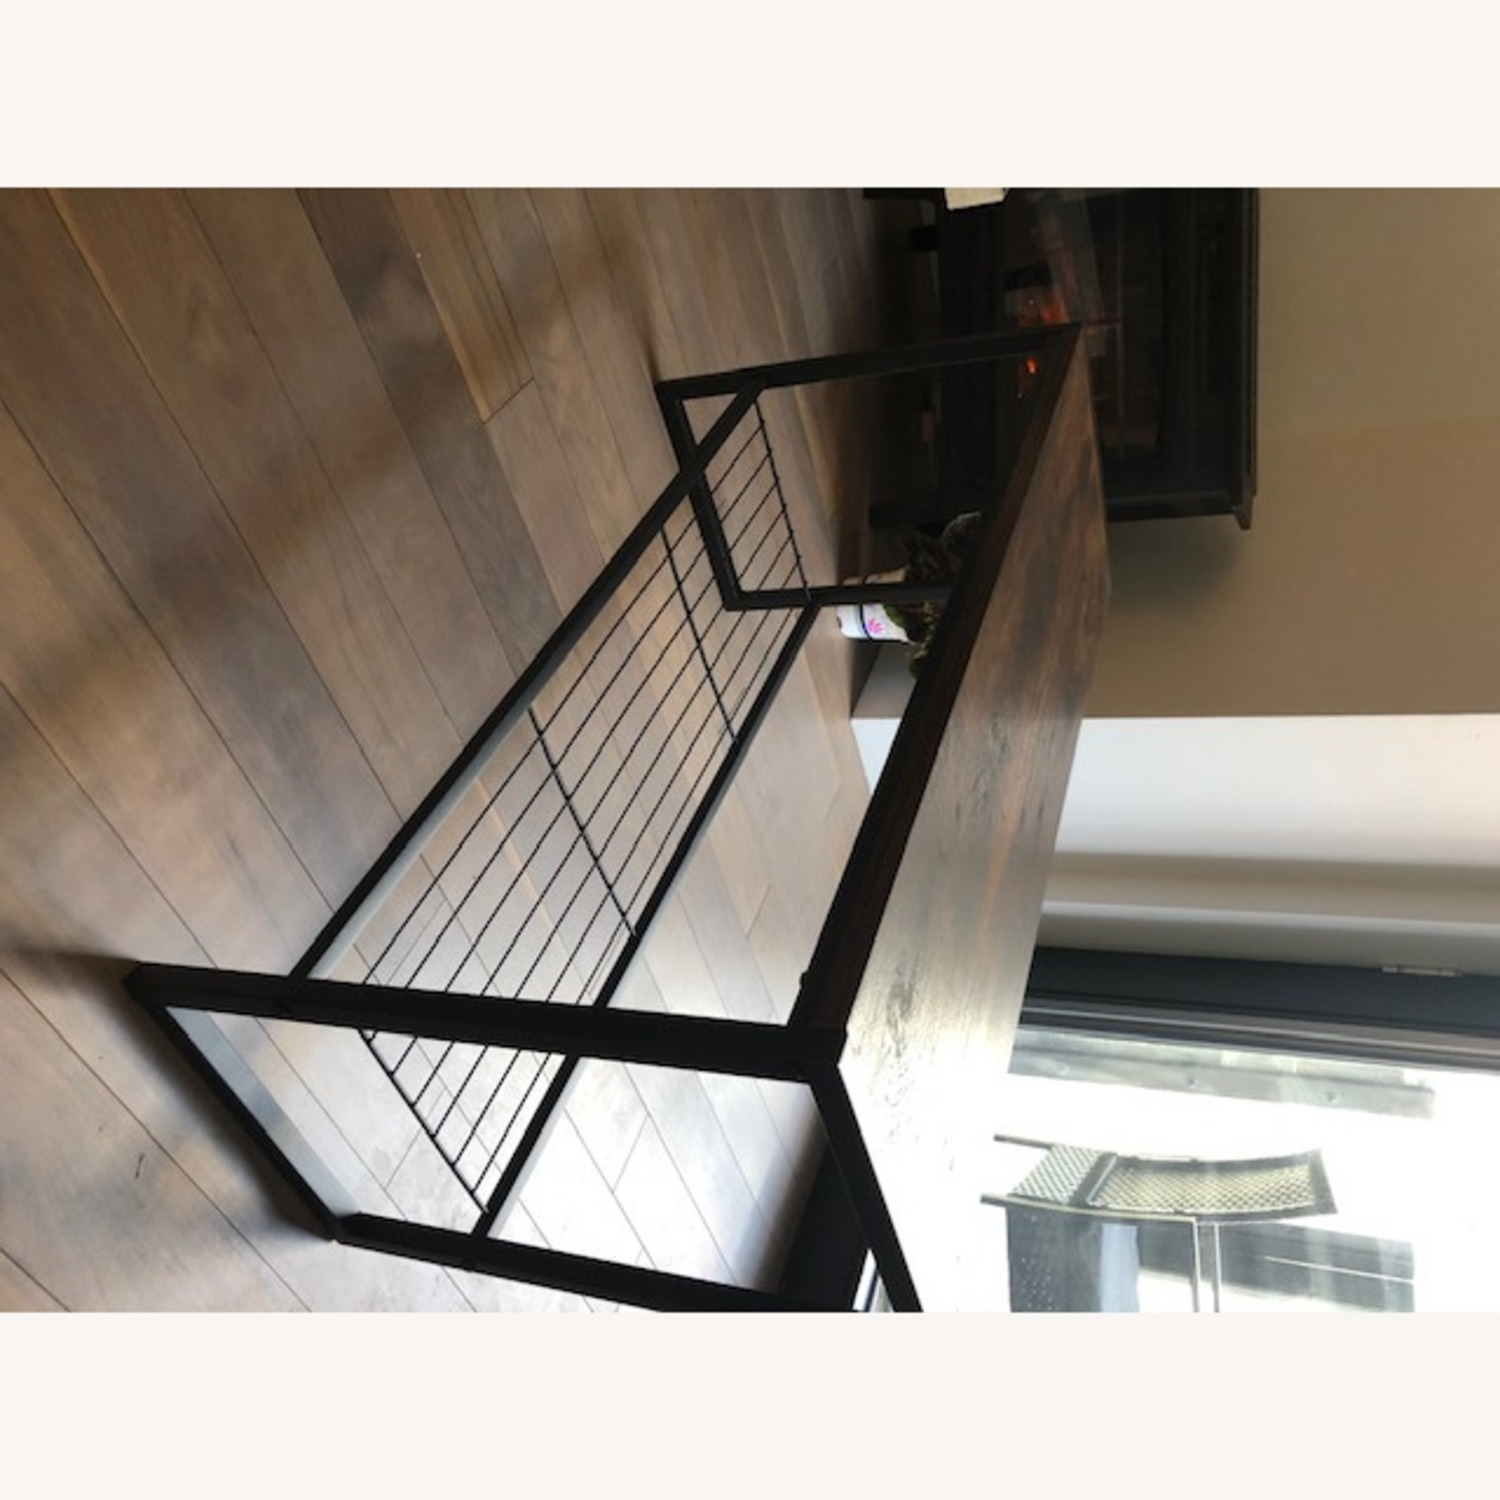 Whitmores Modern Industrial Entry Way Bench - image-5